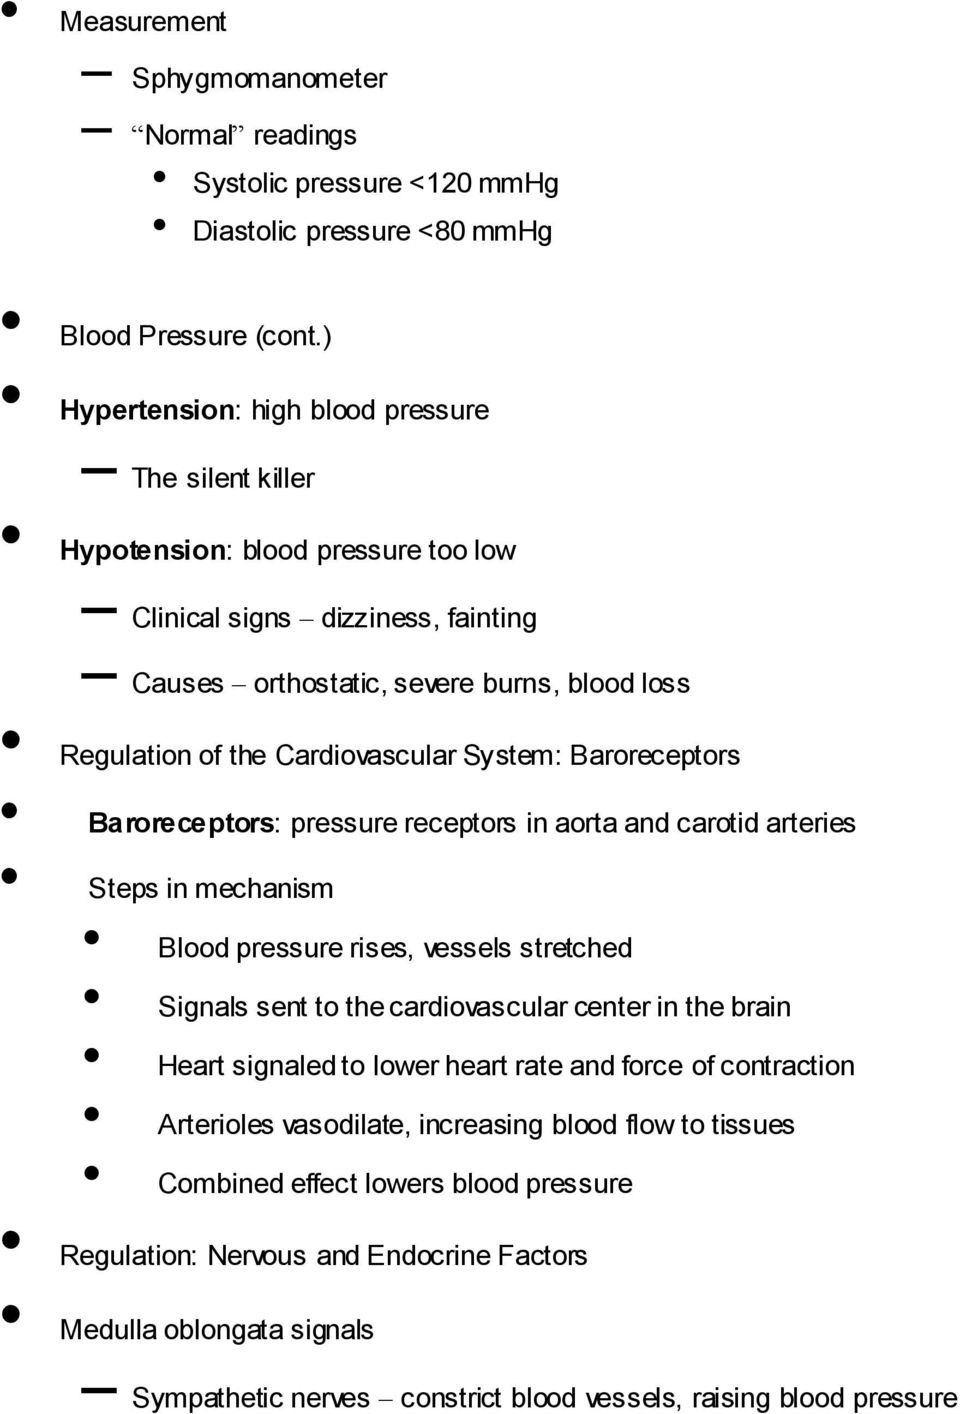 Cardiovascular System: Baroreceptors Baroreceptors: pressure receptors in aorta and carotid arteries Steps in mechanism Blood pressure rises, vessels stretched Signals sent to the cardiovascular